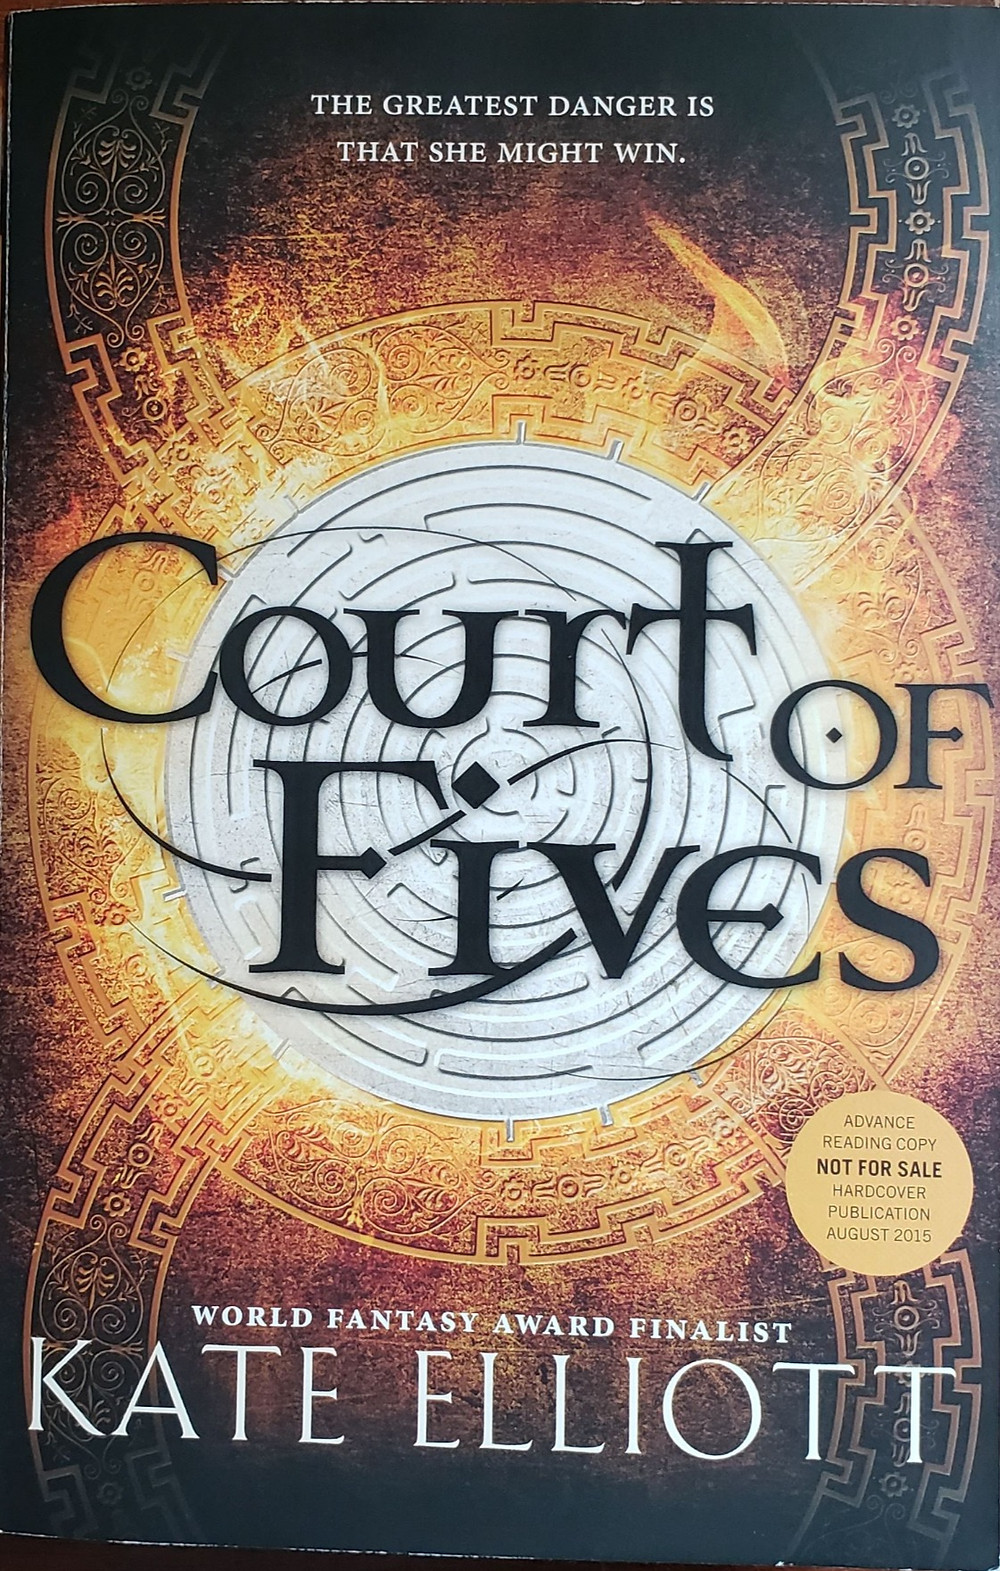 Front image of the book cover Court of Fives by Kate Elliott.